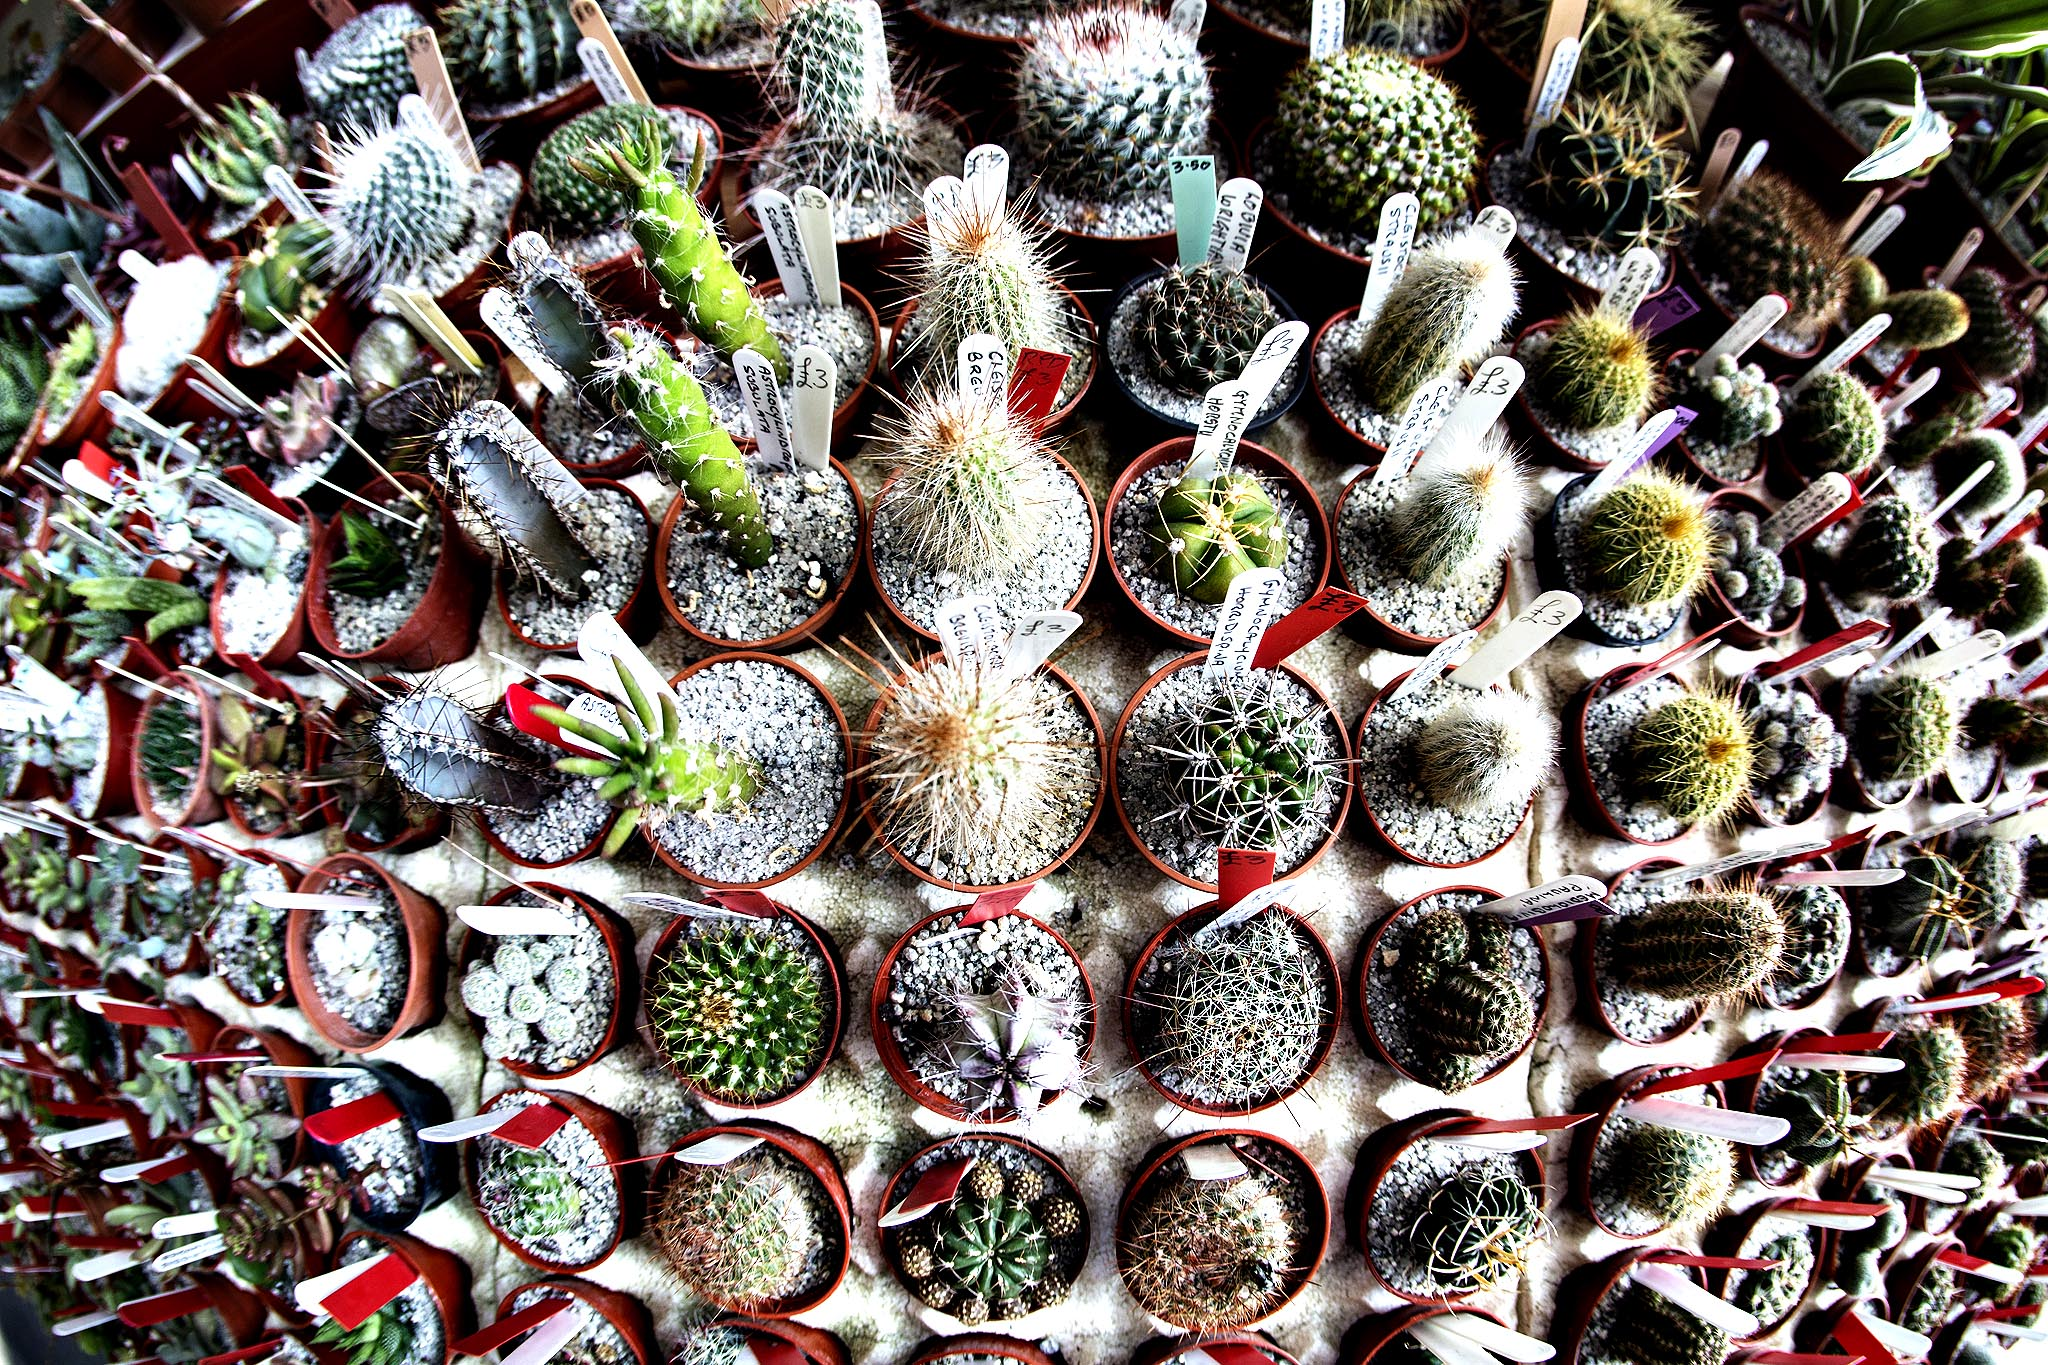 Cacti on display in the Royal Horticultural Society's 'Great London Plant Fair' in the RHS Lawrence and Lindley Halls on April 1, 2014 in London, England. The show, which aims to celebrate the vibrancy of spring, includes the 'RHS Early Daffodil Competition' and runs until April 4, 2014.